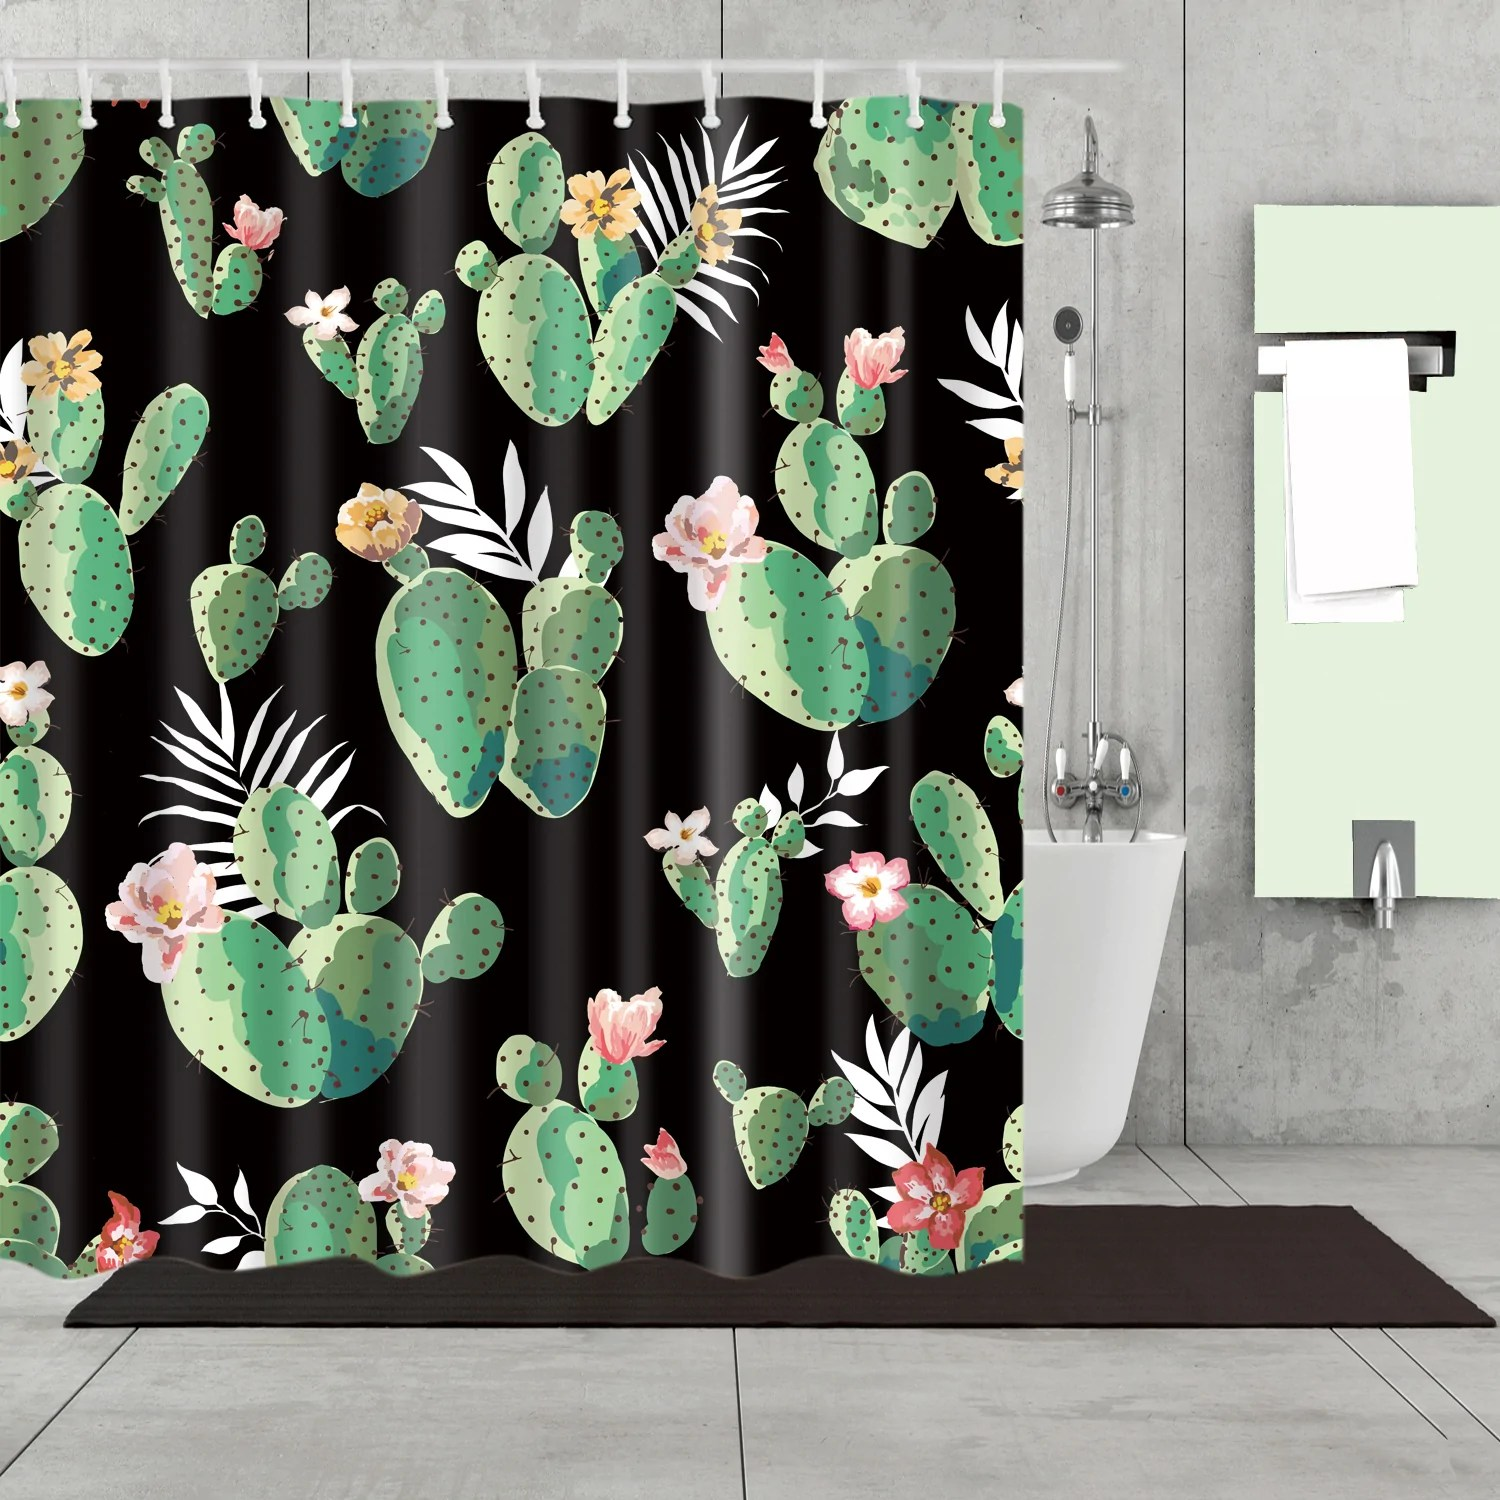 Black Queen Shower Curtain Black Backdrop Queen Of The Night Cactus Shower Curtain Bathroom Decor